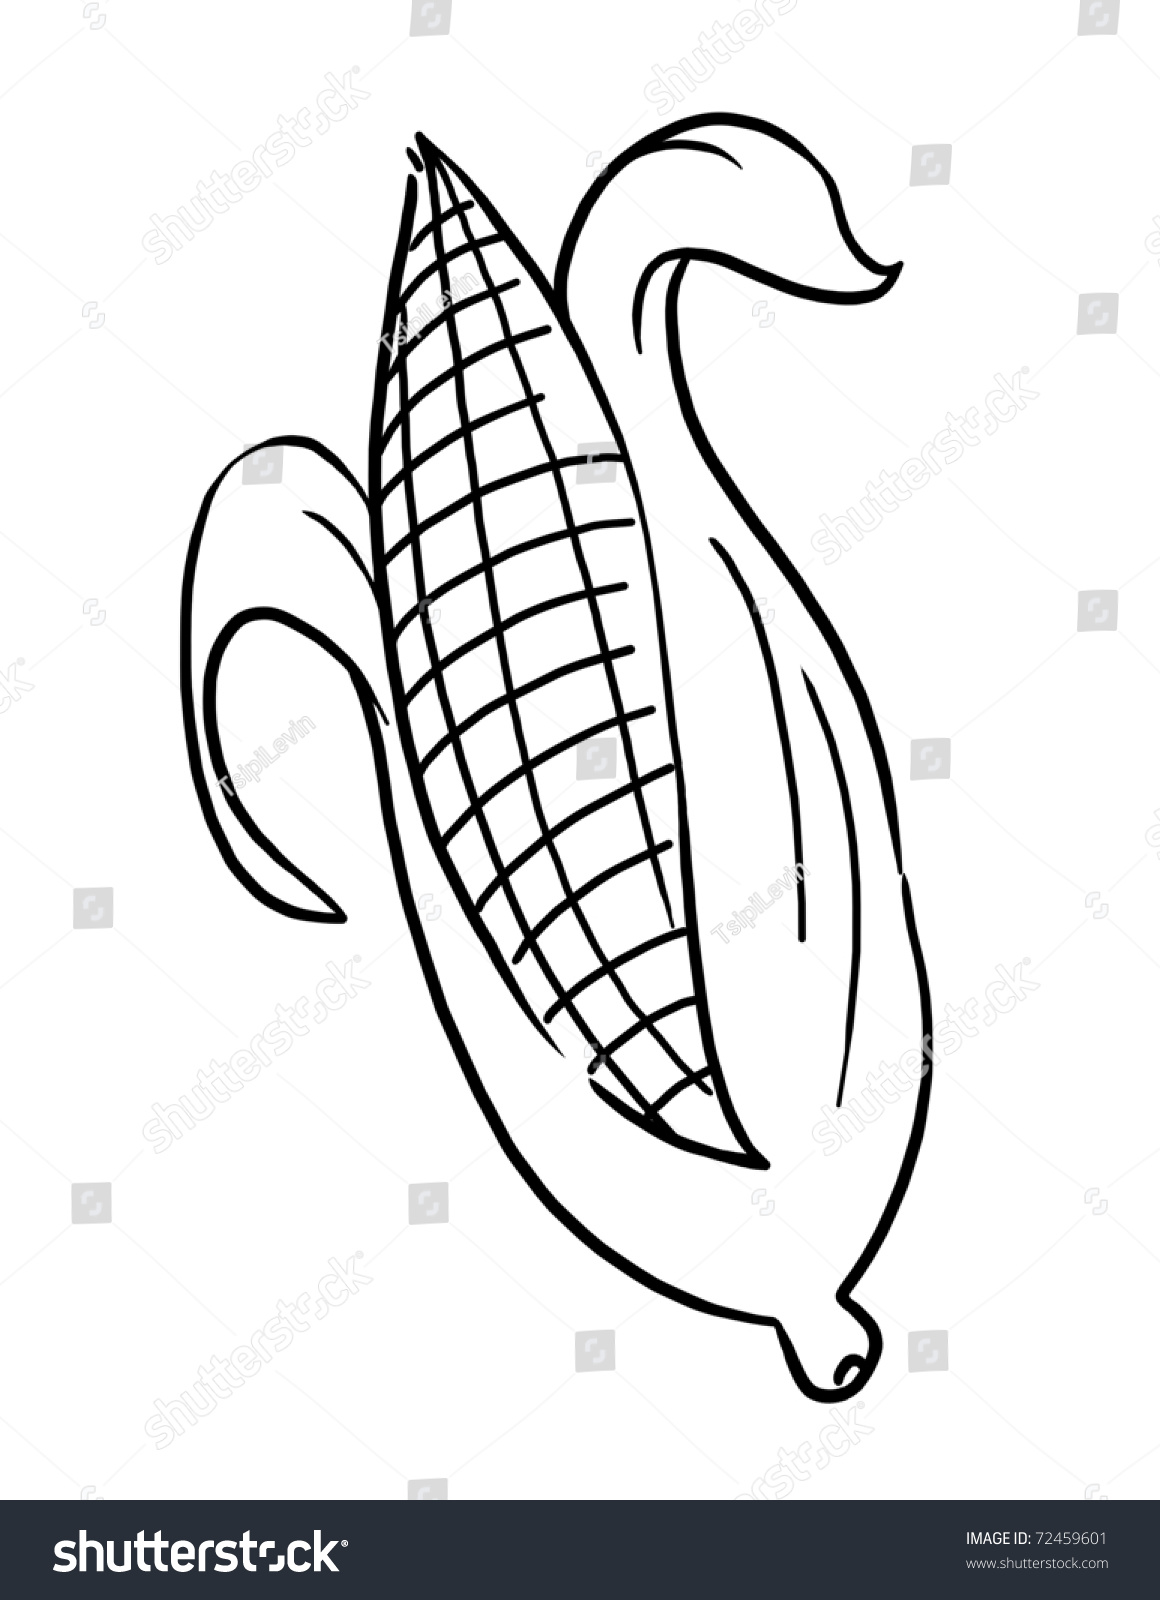 Outline Corn Illustration Ear Of Drawing Isolated On The Cob